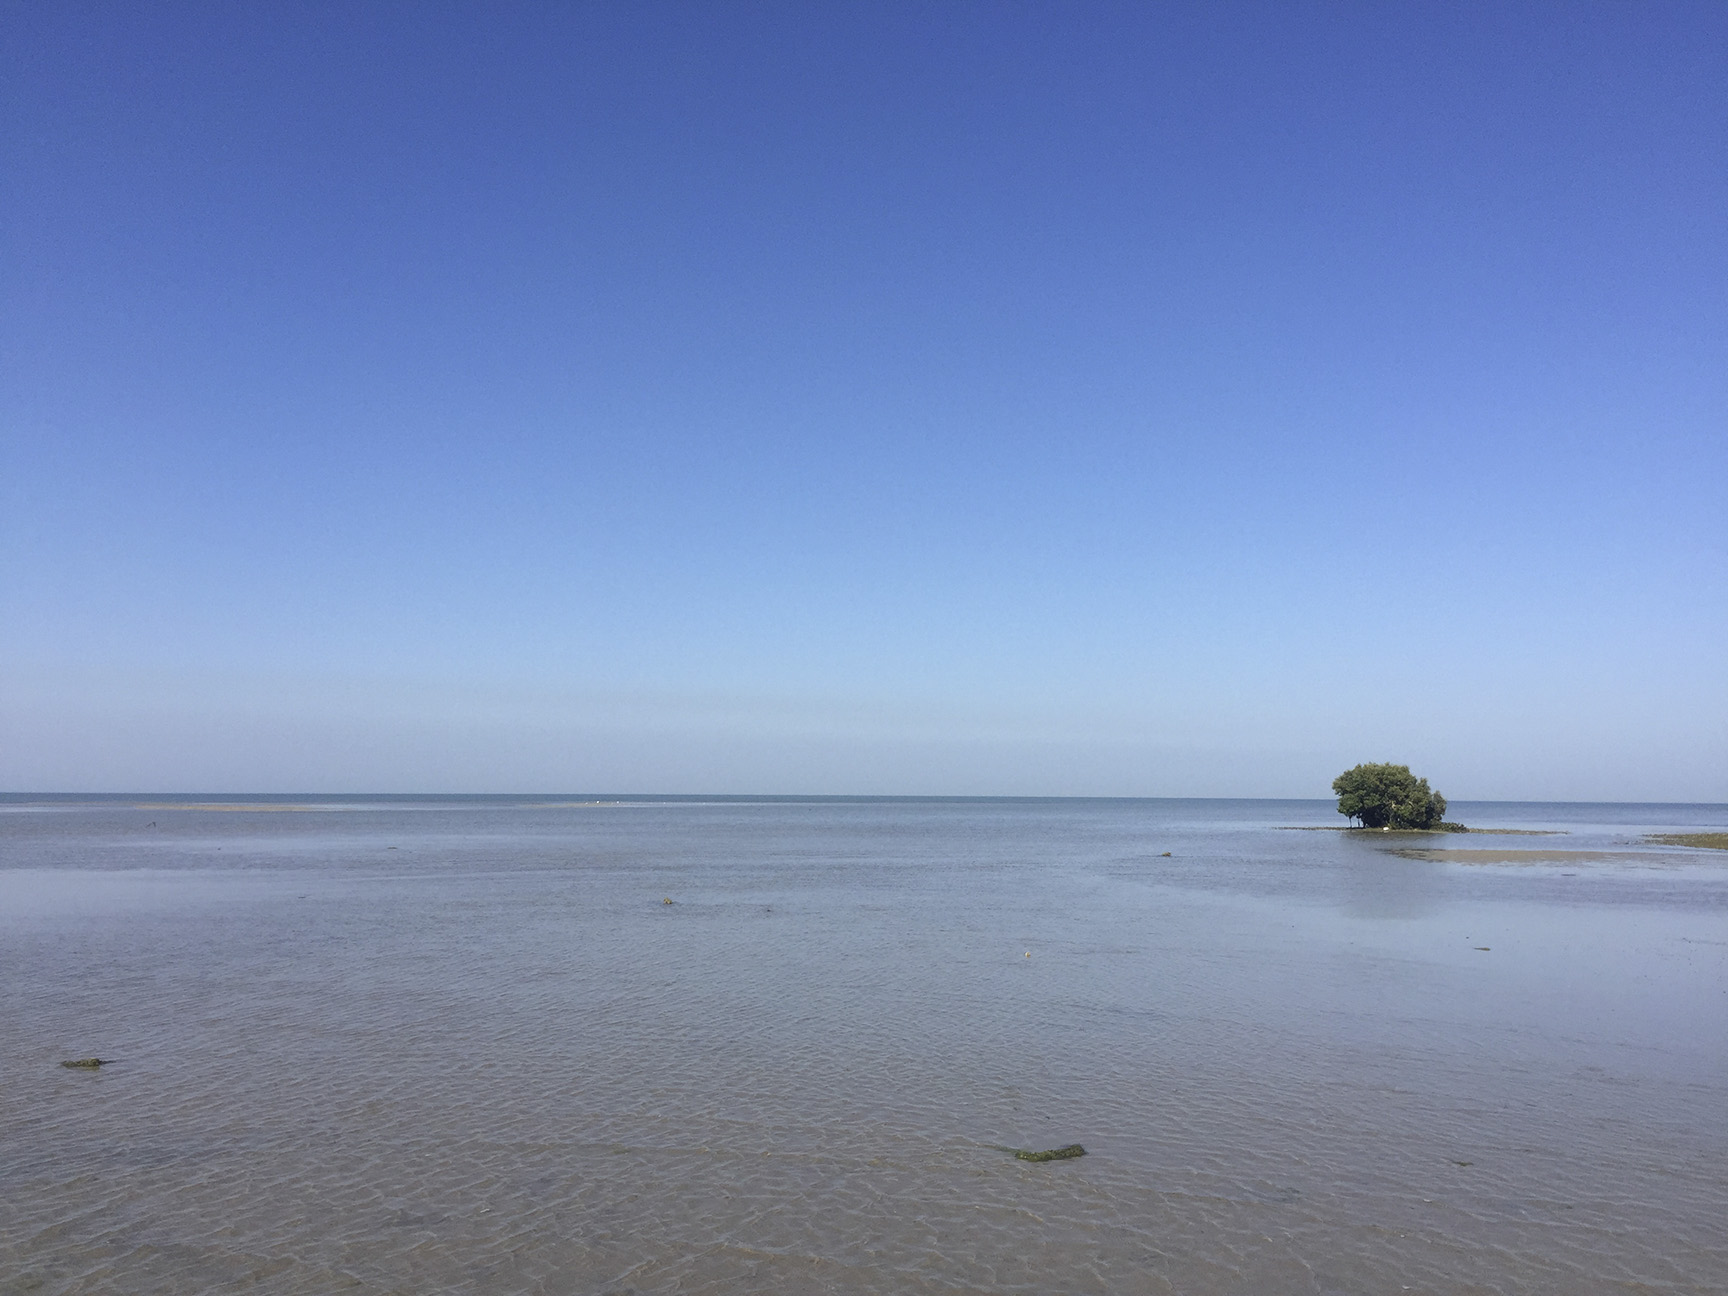 Shot at Narara Marine National Park near Jamnagar is a great place to relax, enjoy and feel few aquatic creatures. Took iphone of my friend and shot the beautiful little green buddy standing lonely into the waters.